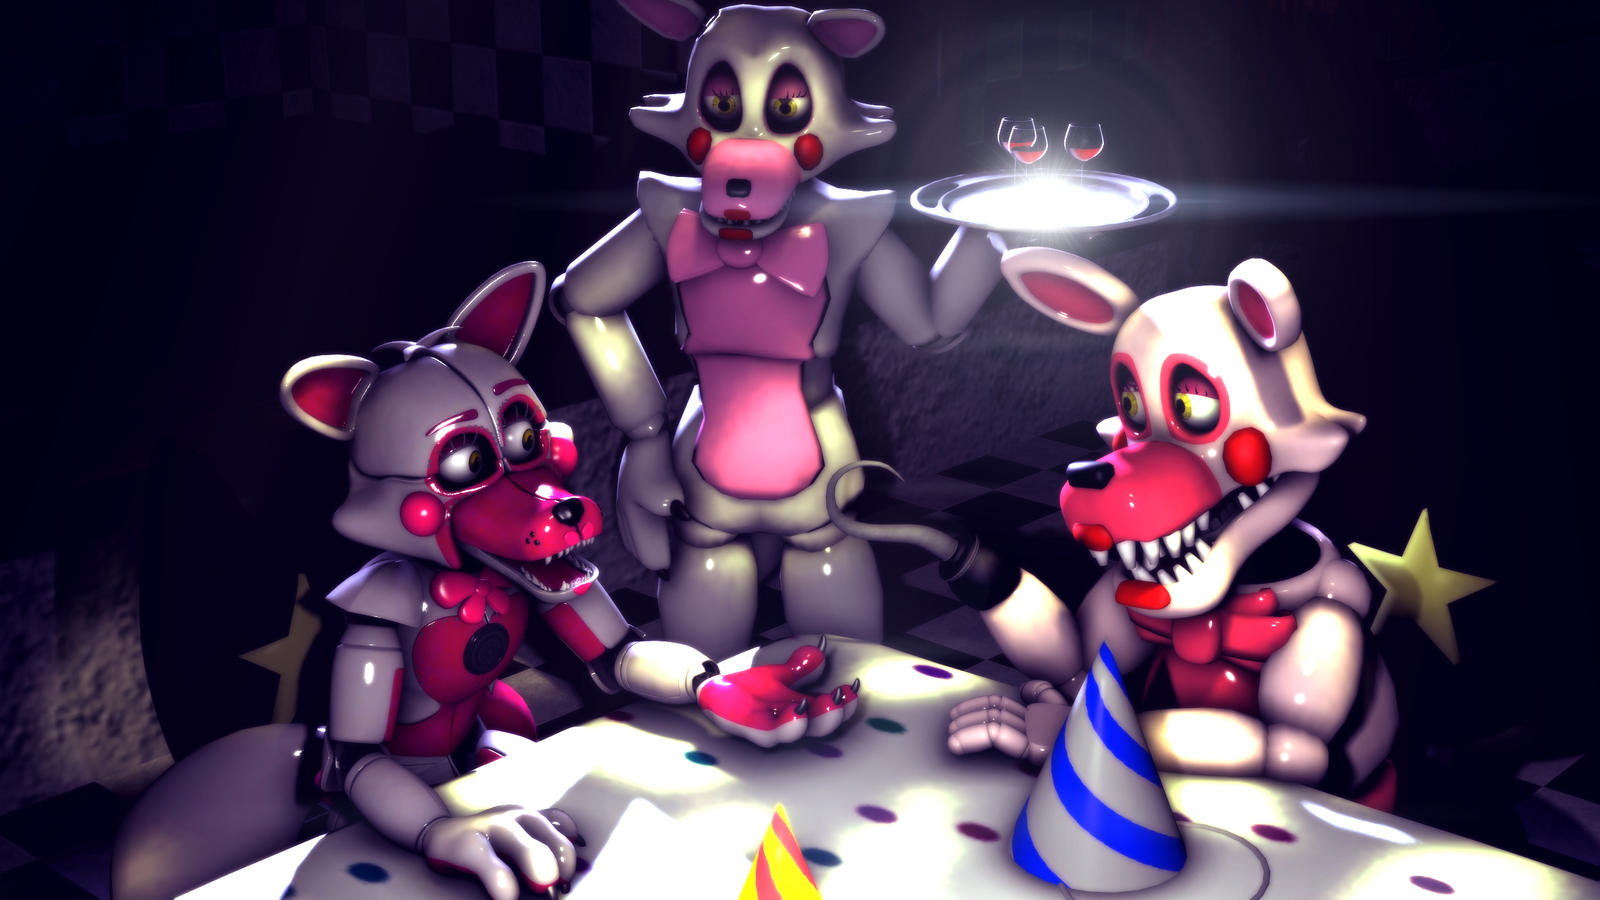 Funtime Foxy By Oldfoxy123 On DeviantArt